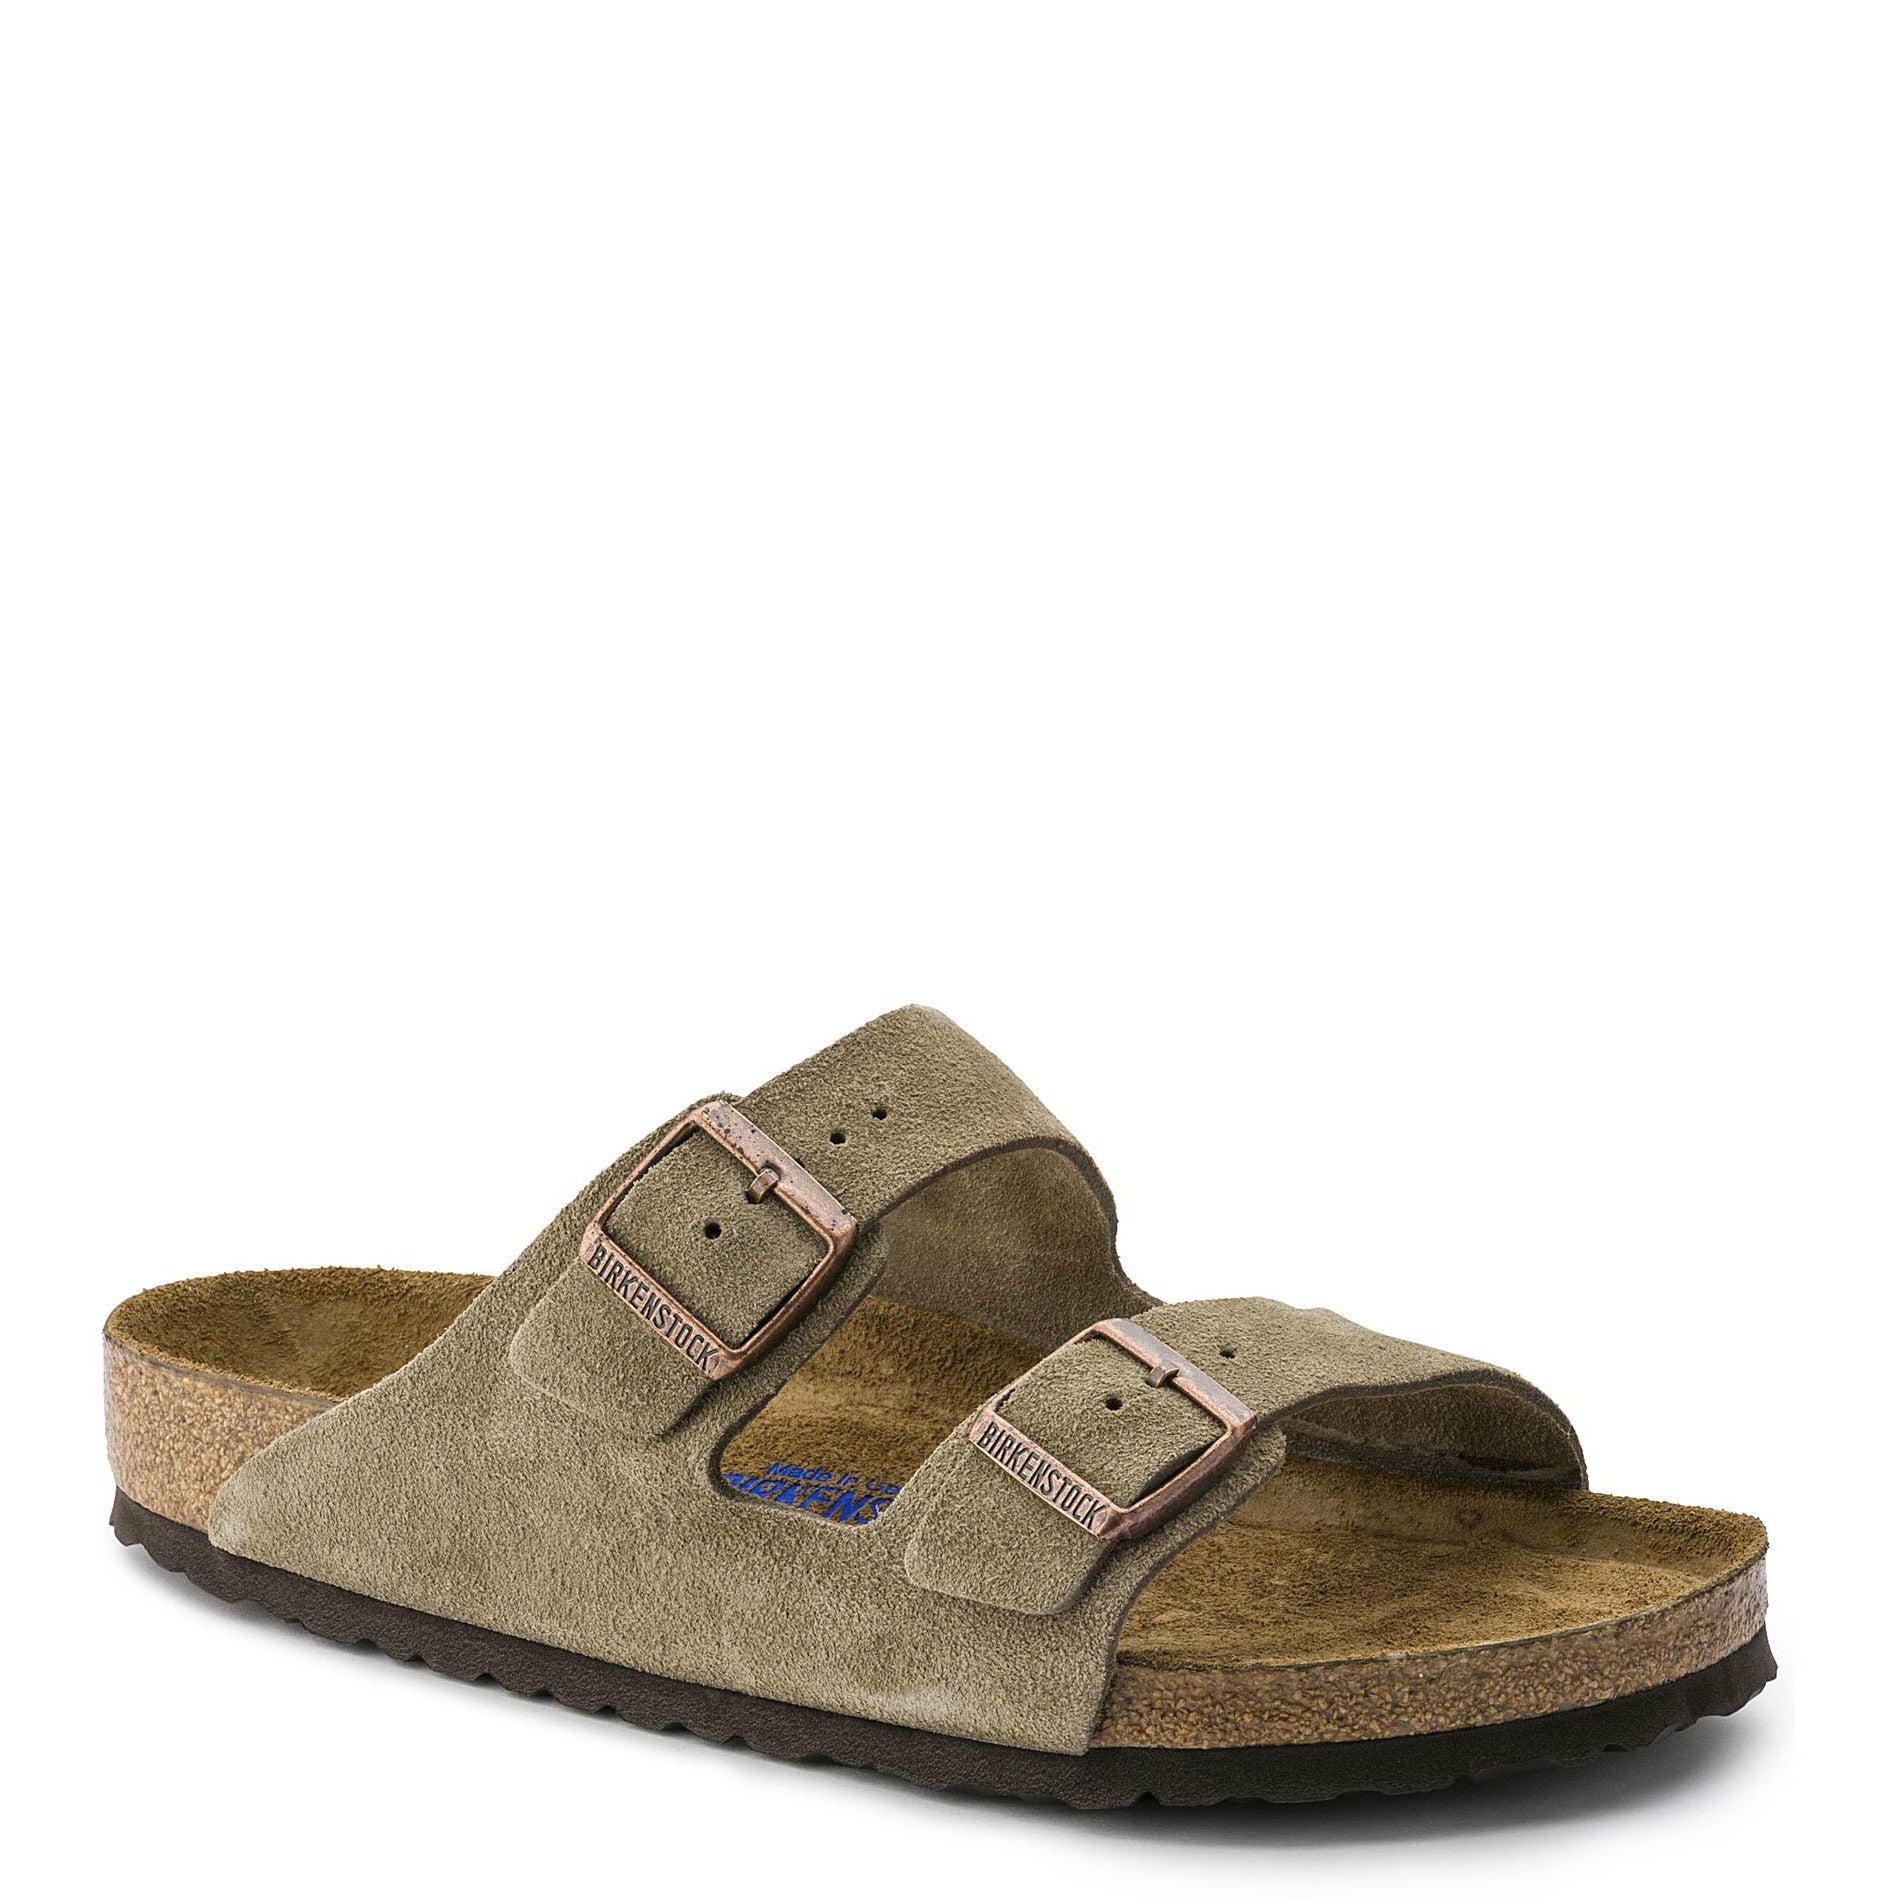 72685894d Birkenstock Arizona Soft Footbed - Taupe